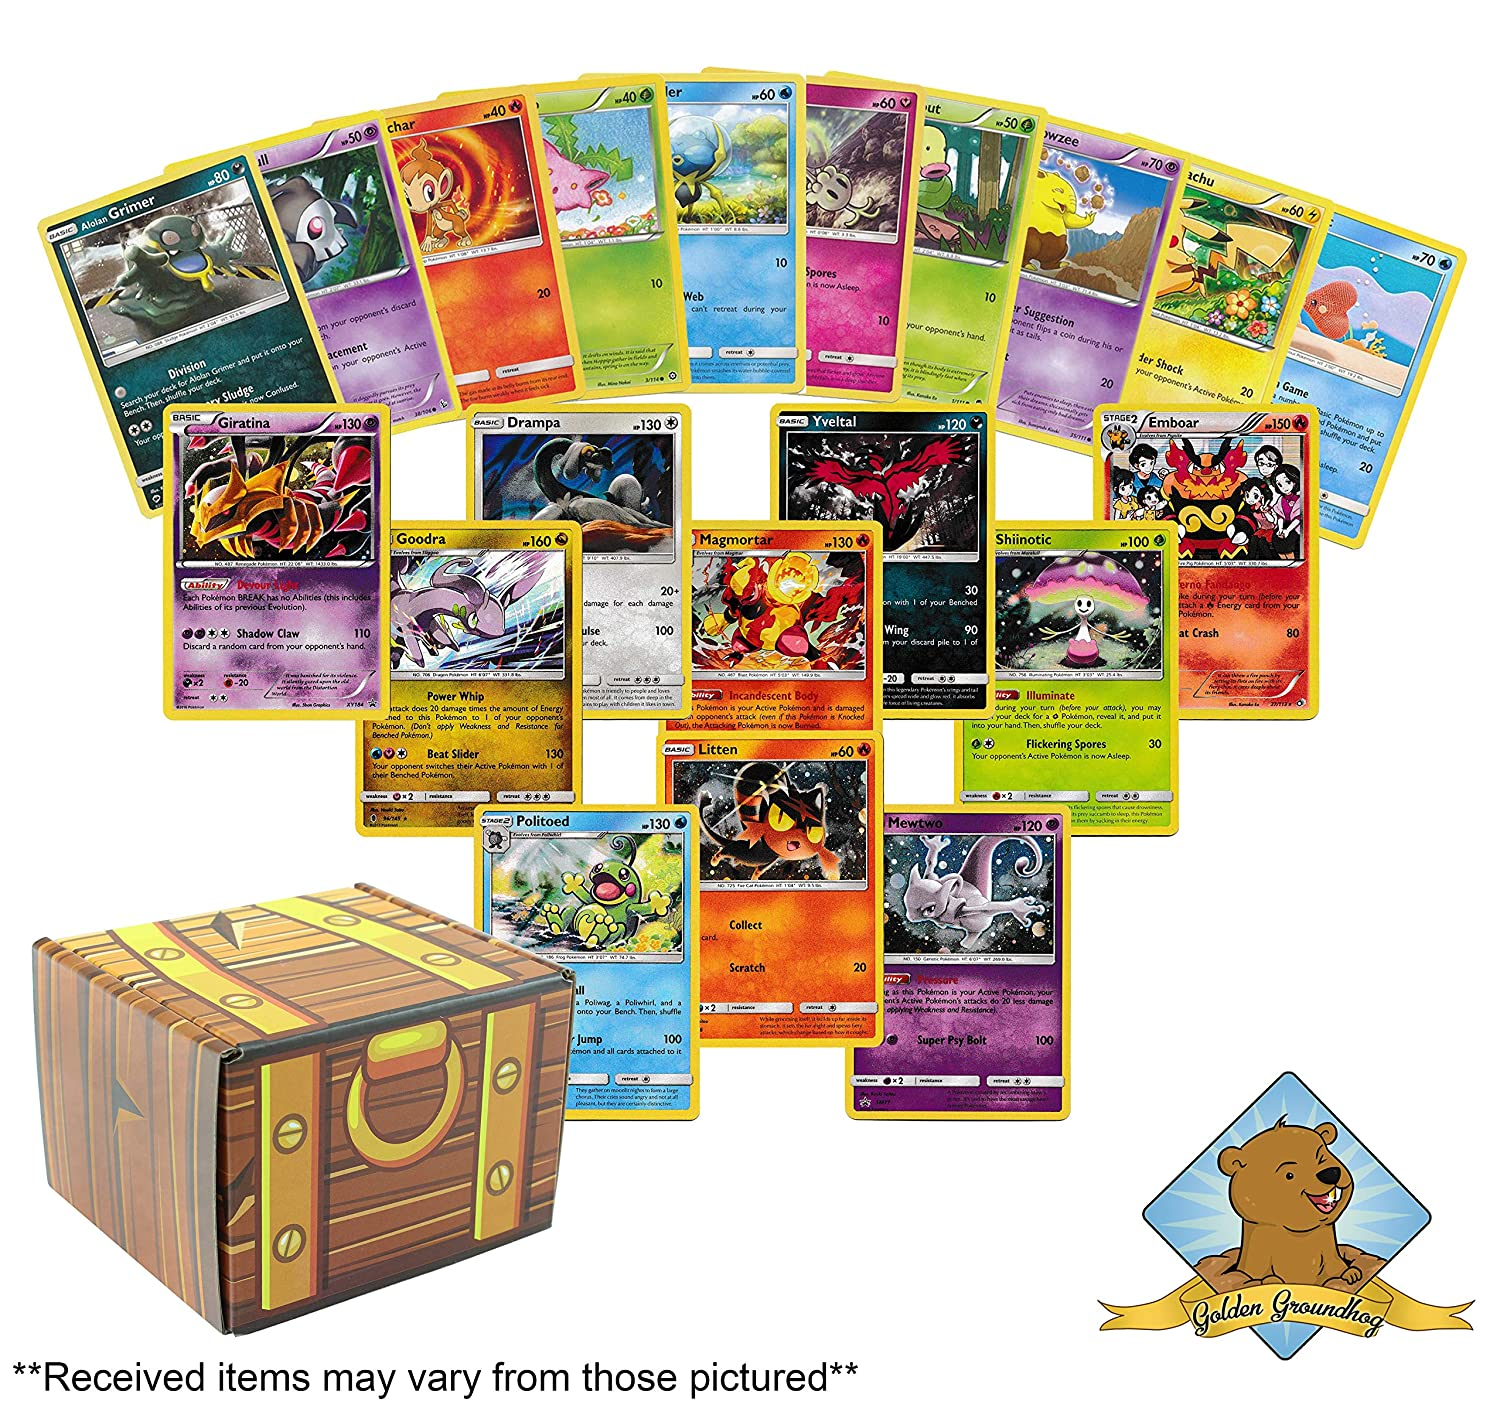 100 Assorted Pokemon Cards Featuring 10 Promo Cards Includes Golden Groundhog Treasure Chest Storage Box!